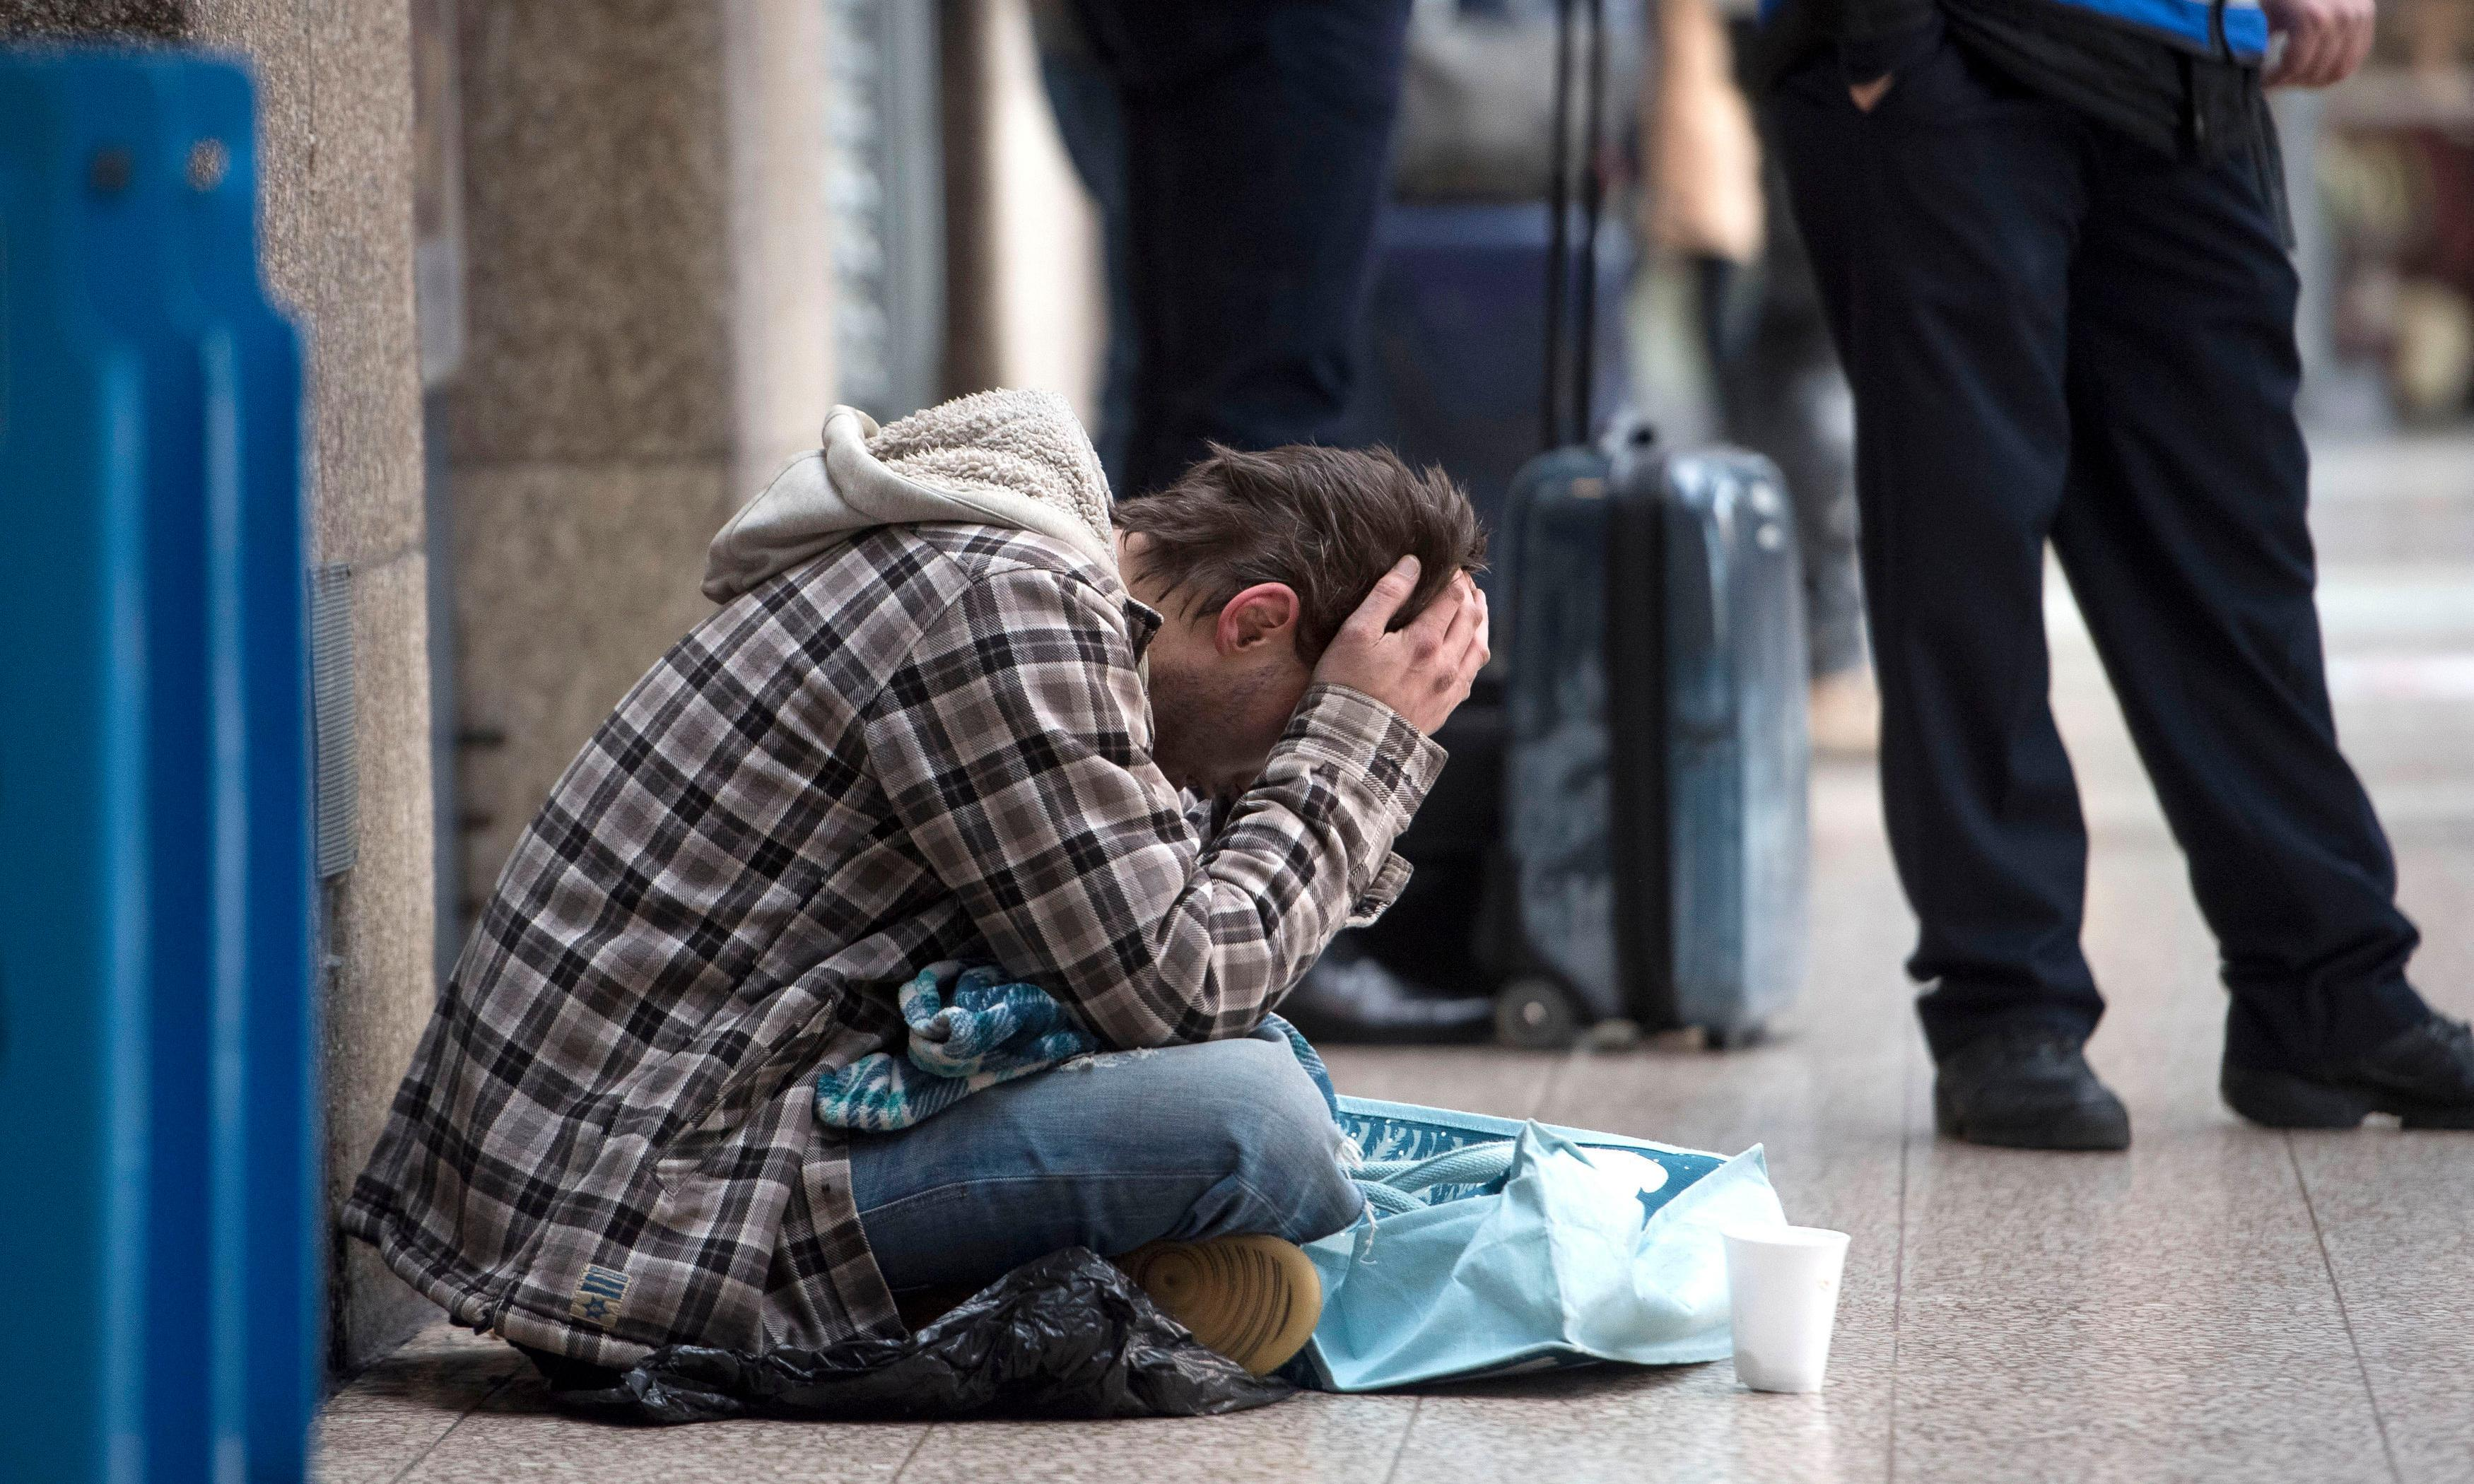 Rough sleepers will die this winter. The Tories should embrace Labour's solution